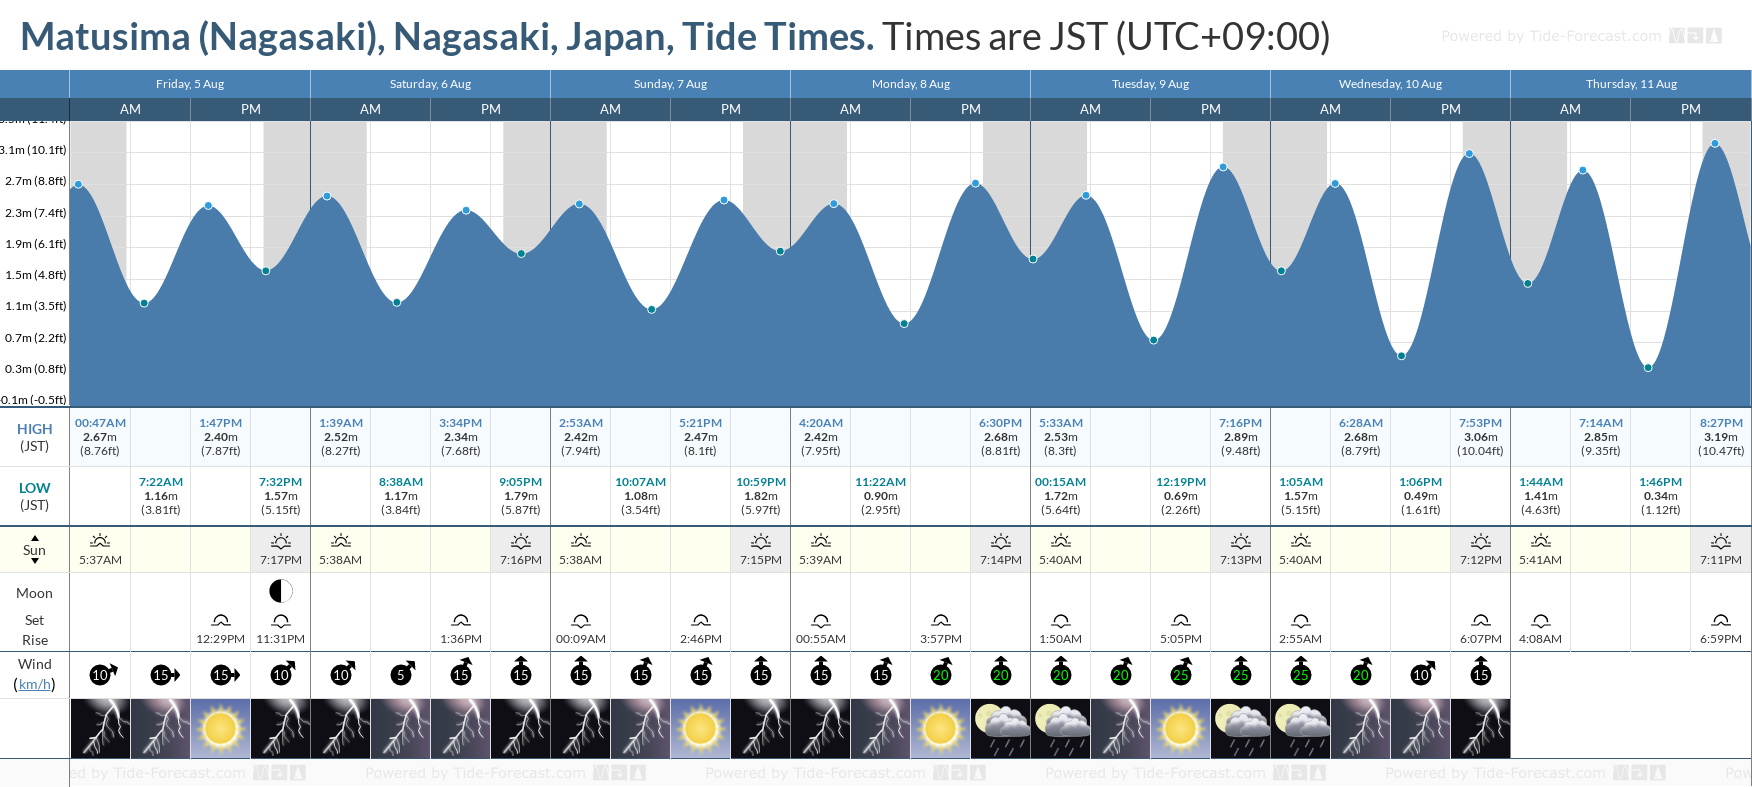 Matusima (Nagasaki), Nagasaki, Japan Tide Chart including high and low tide tide times for the next 7 days